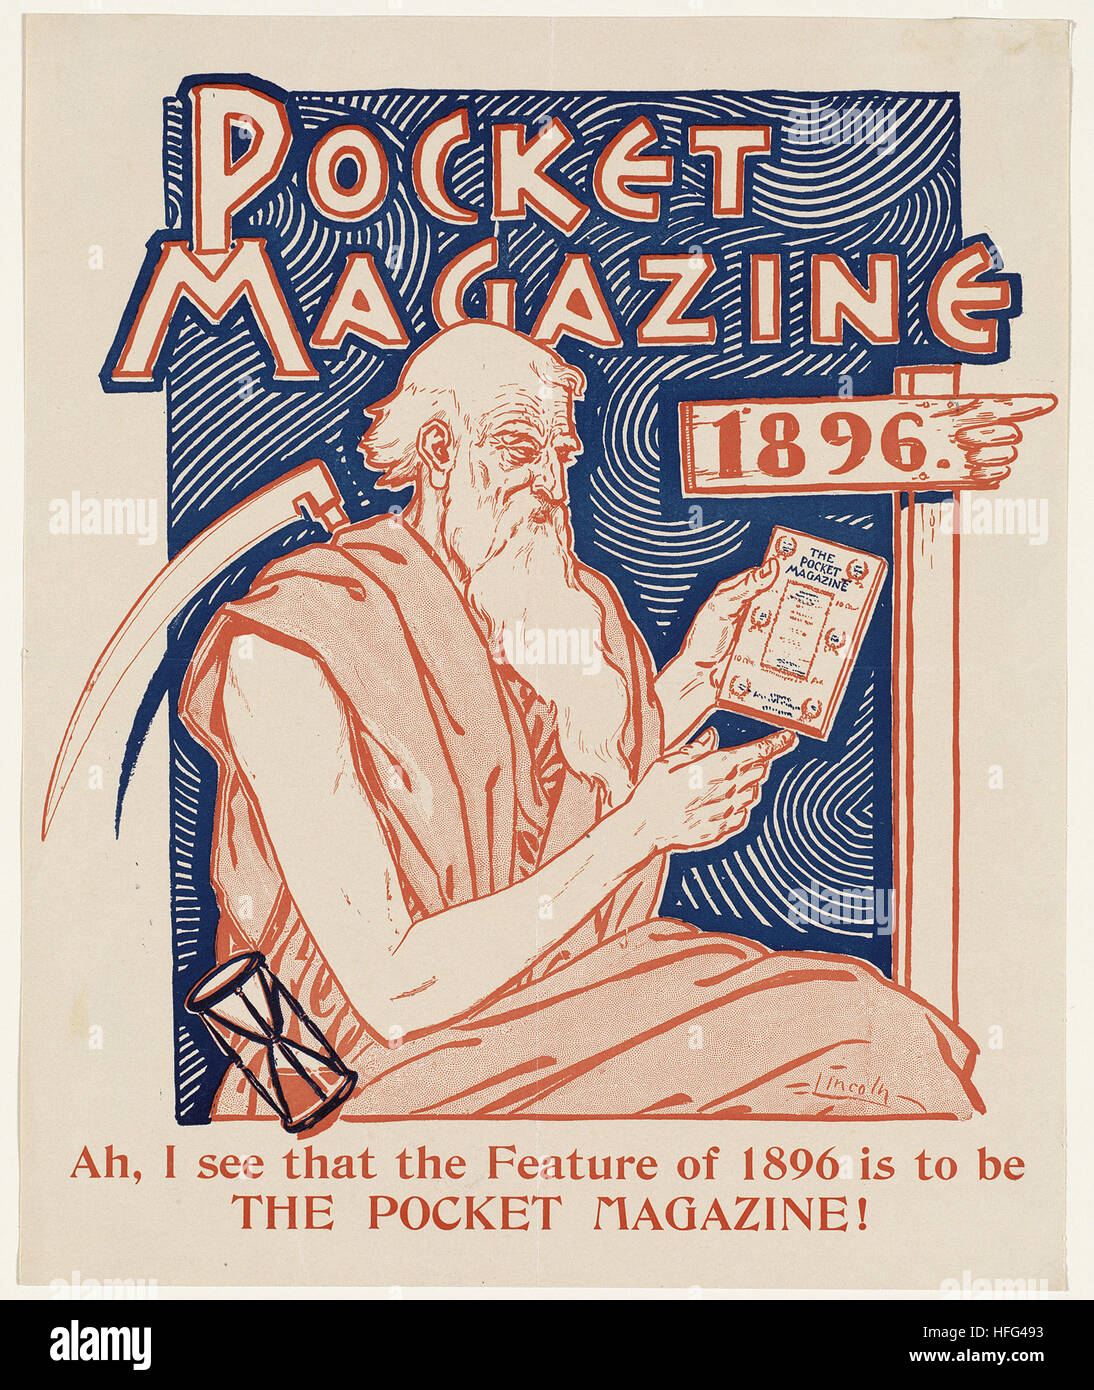 Pocket magazine 1896 - Stock Image